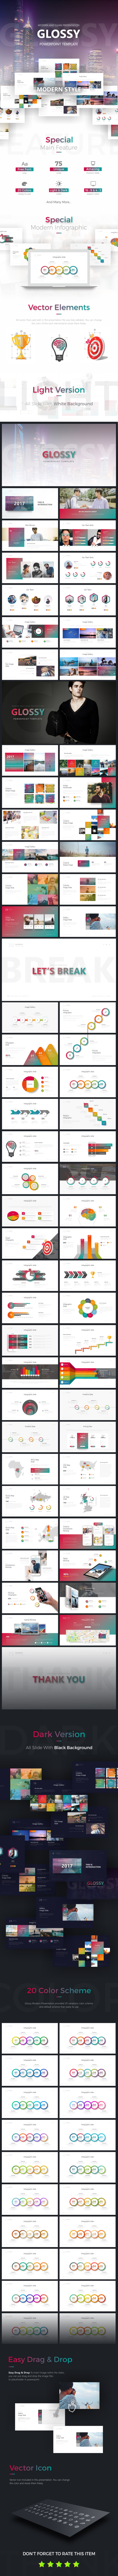 Glossy PowerPoint Template - Business PowerPoint Templates